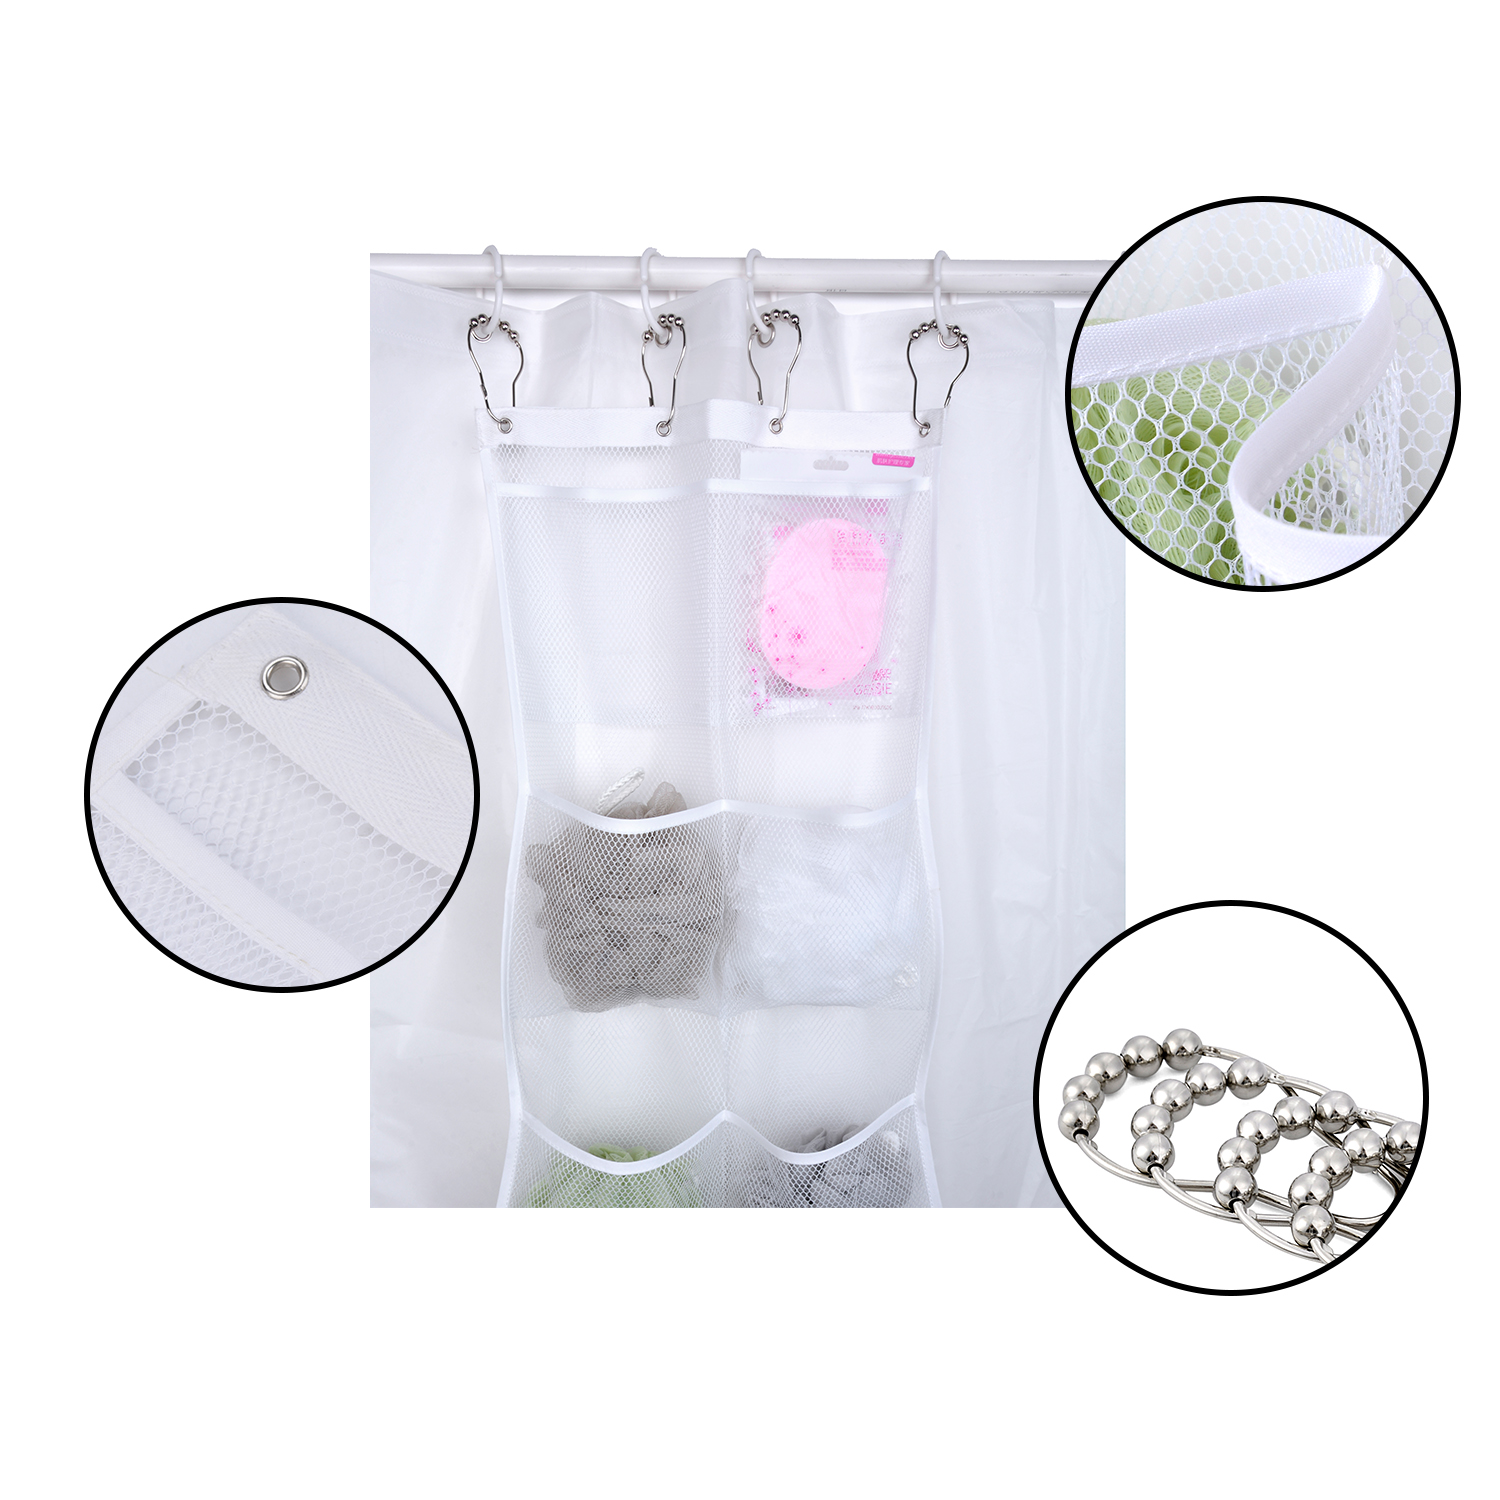 Shower Caddy, Coxeer Quick Dry Hanging Mesh Bath Organizer with 6 Pockets & 4 Hooks for Soaps & Shampoo White